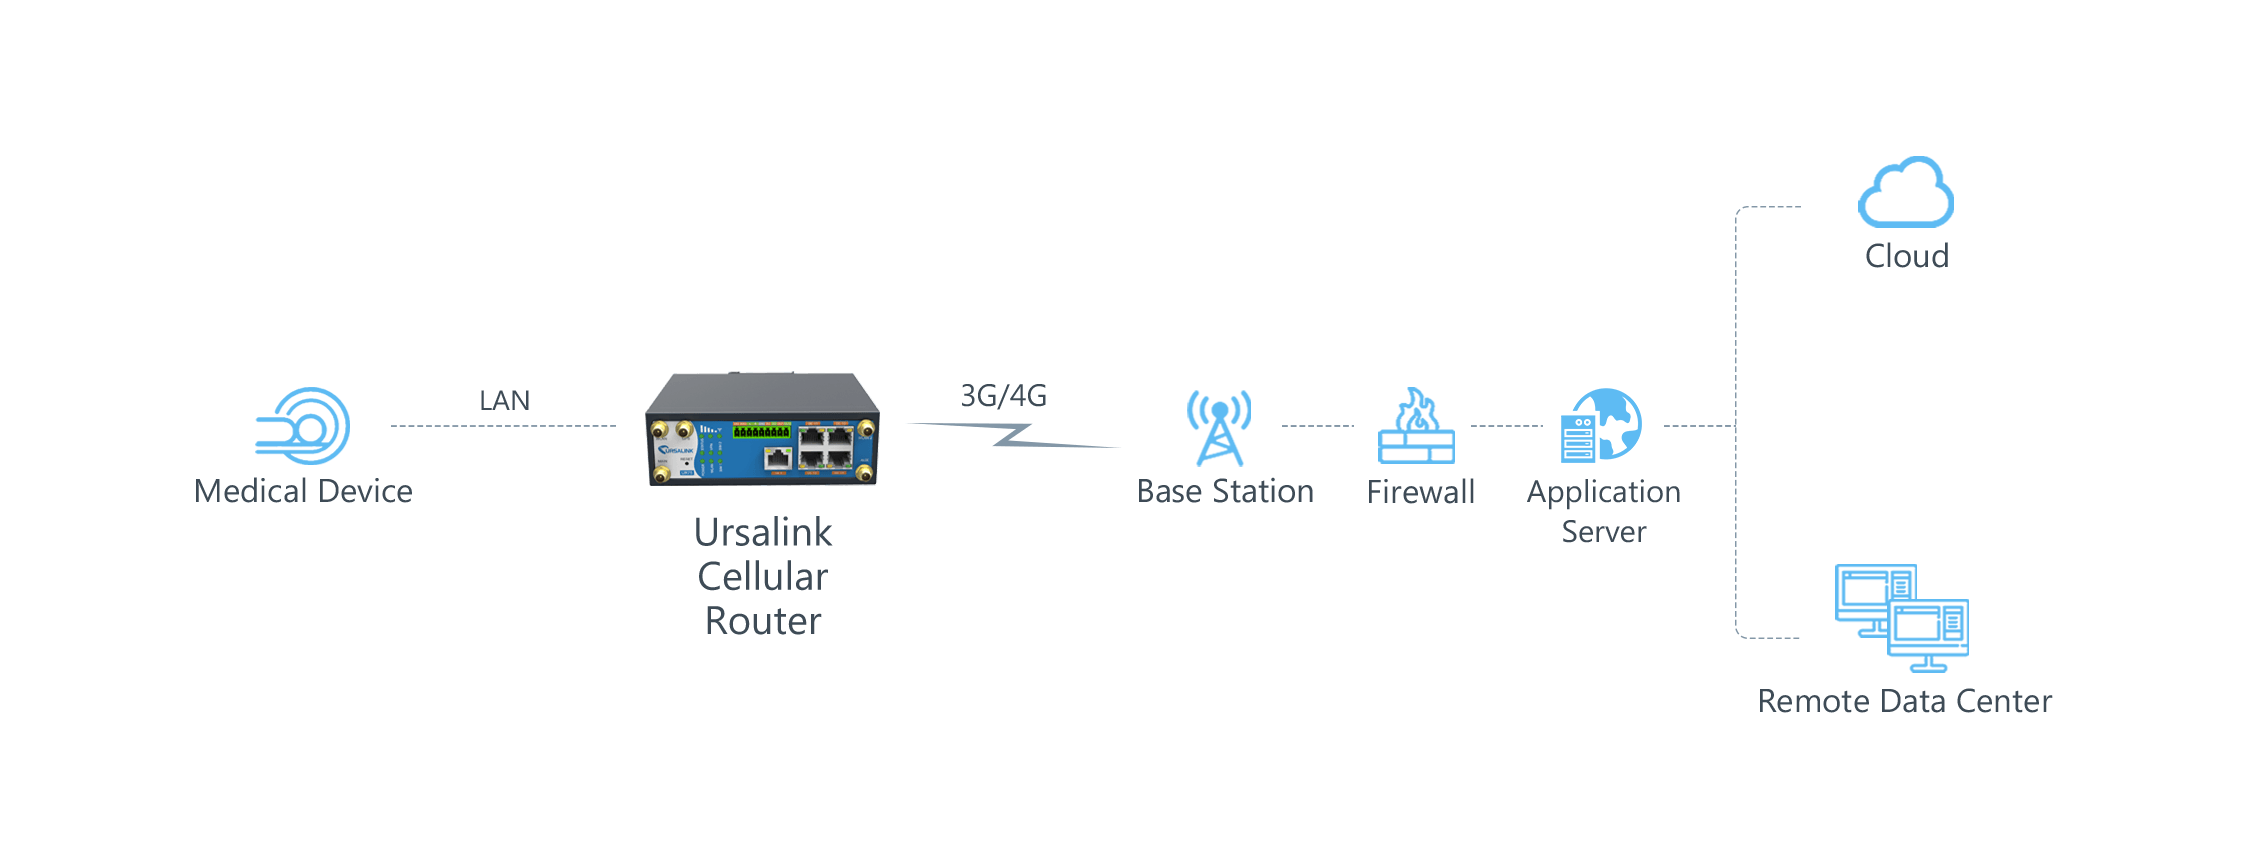 ursalink_outpatient_care_device_topology